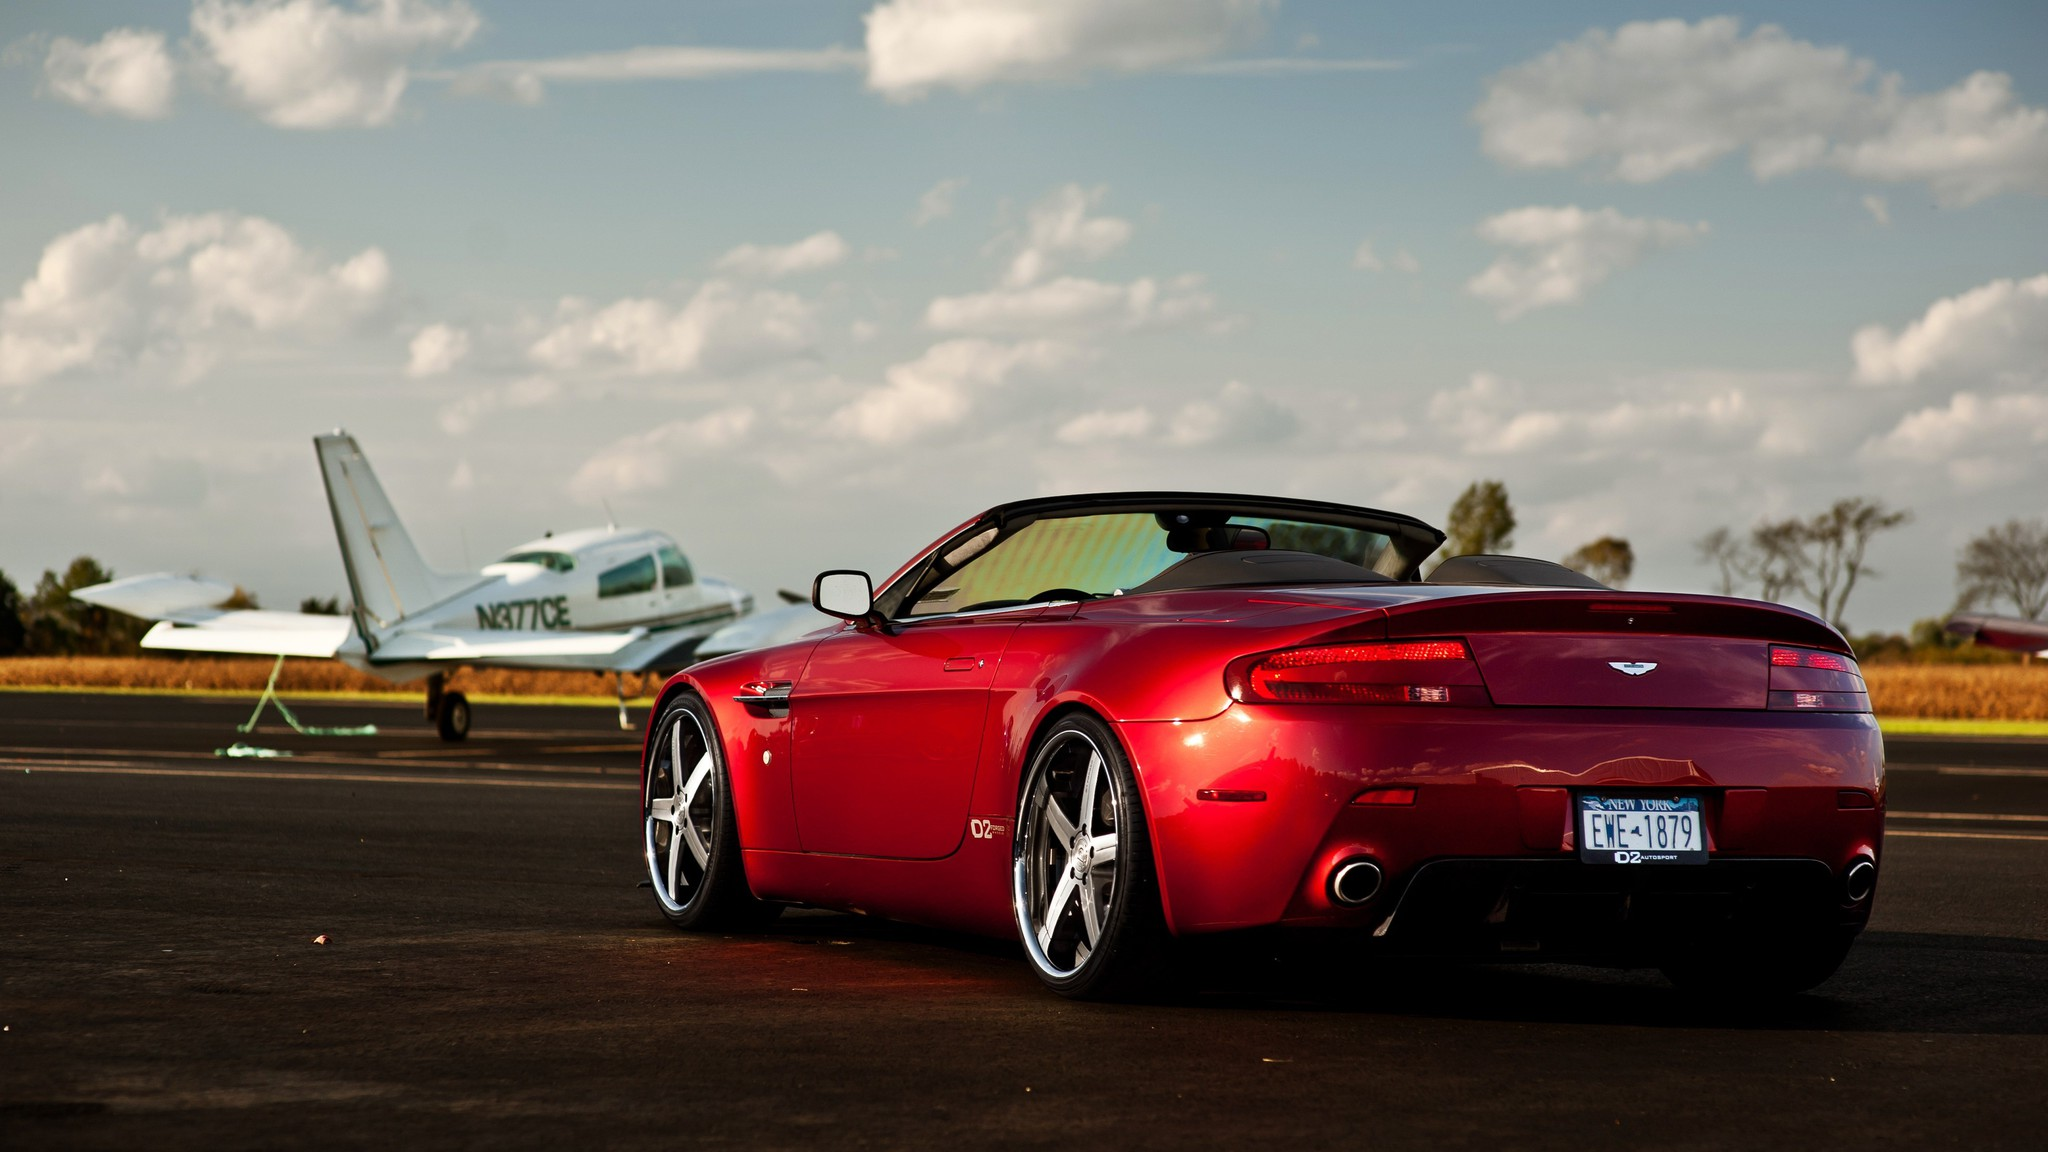 aston martin v8 vantage cabrio cars vehicles wallpaper. Black Bedroom Furniture Sets. Home Design Ideas